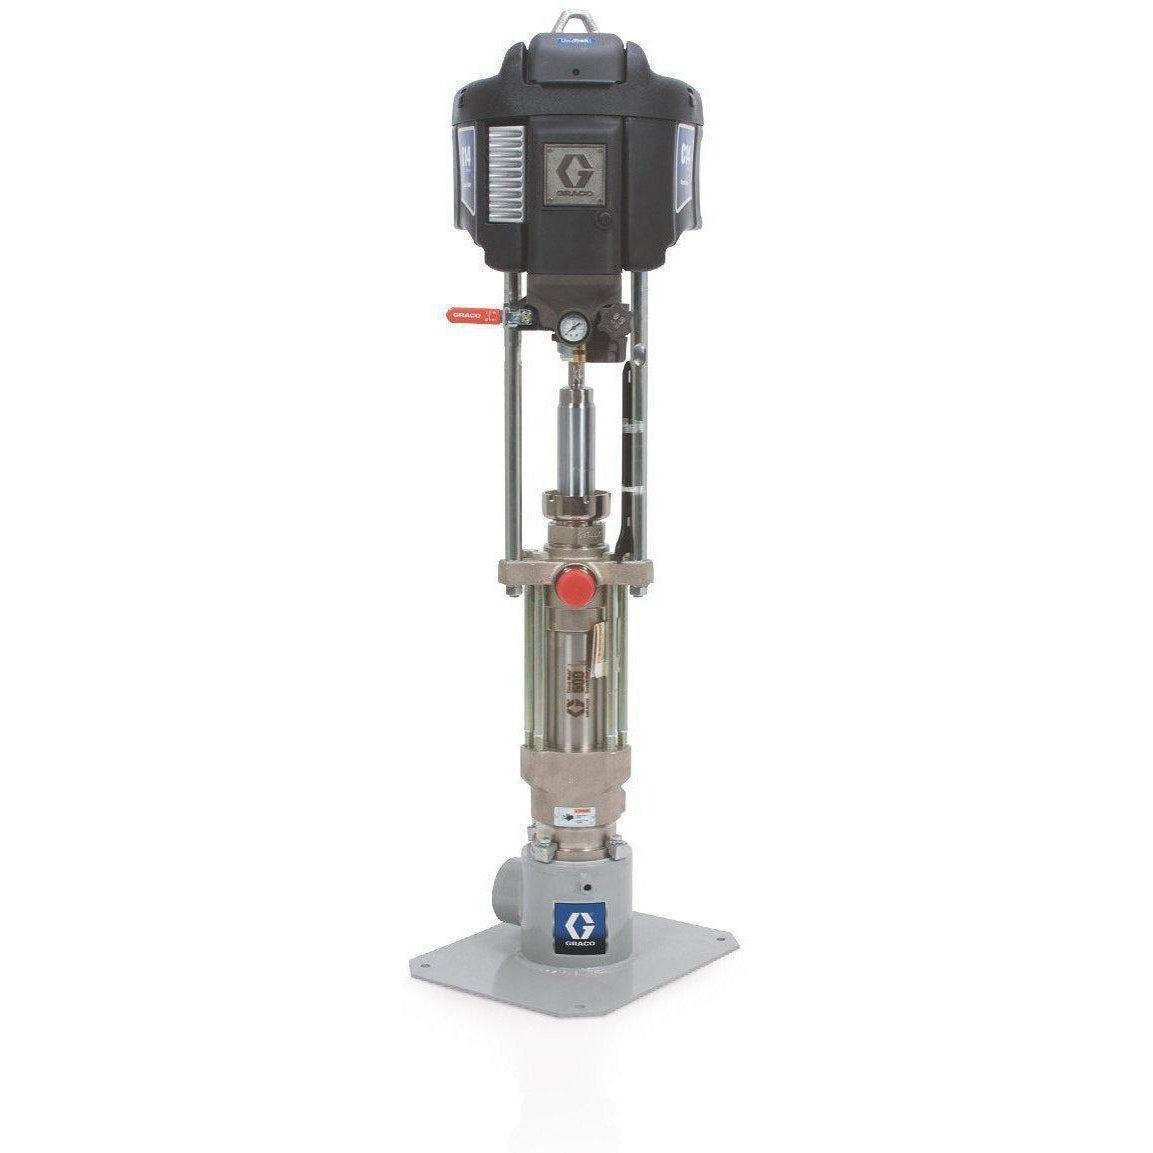 P29Dcs-Graco P29Dcs Nxt™ Check-Mateâ® Air-Powered 29:1 Grease Pump Without Datatrak-Order-Online-Fireball-Equipment